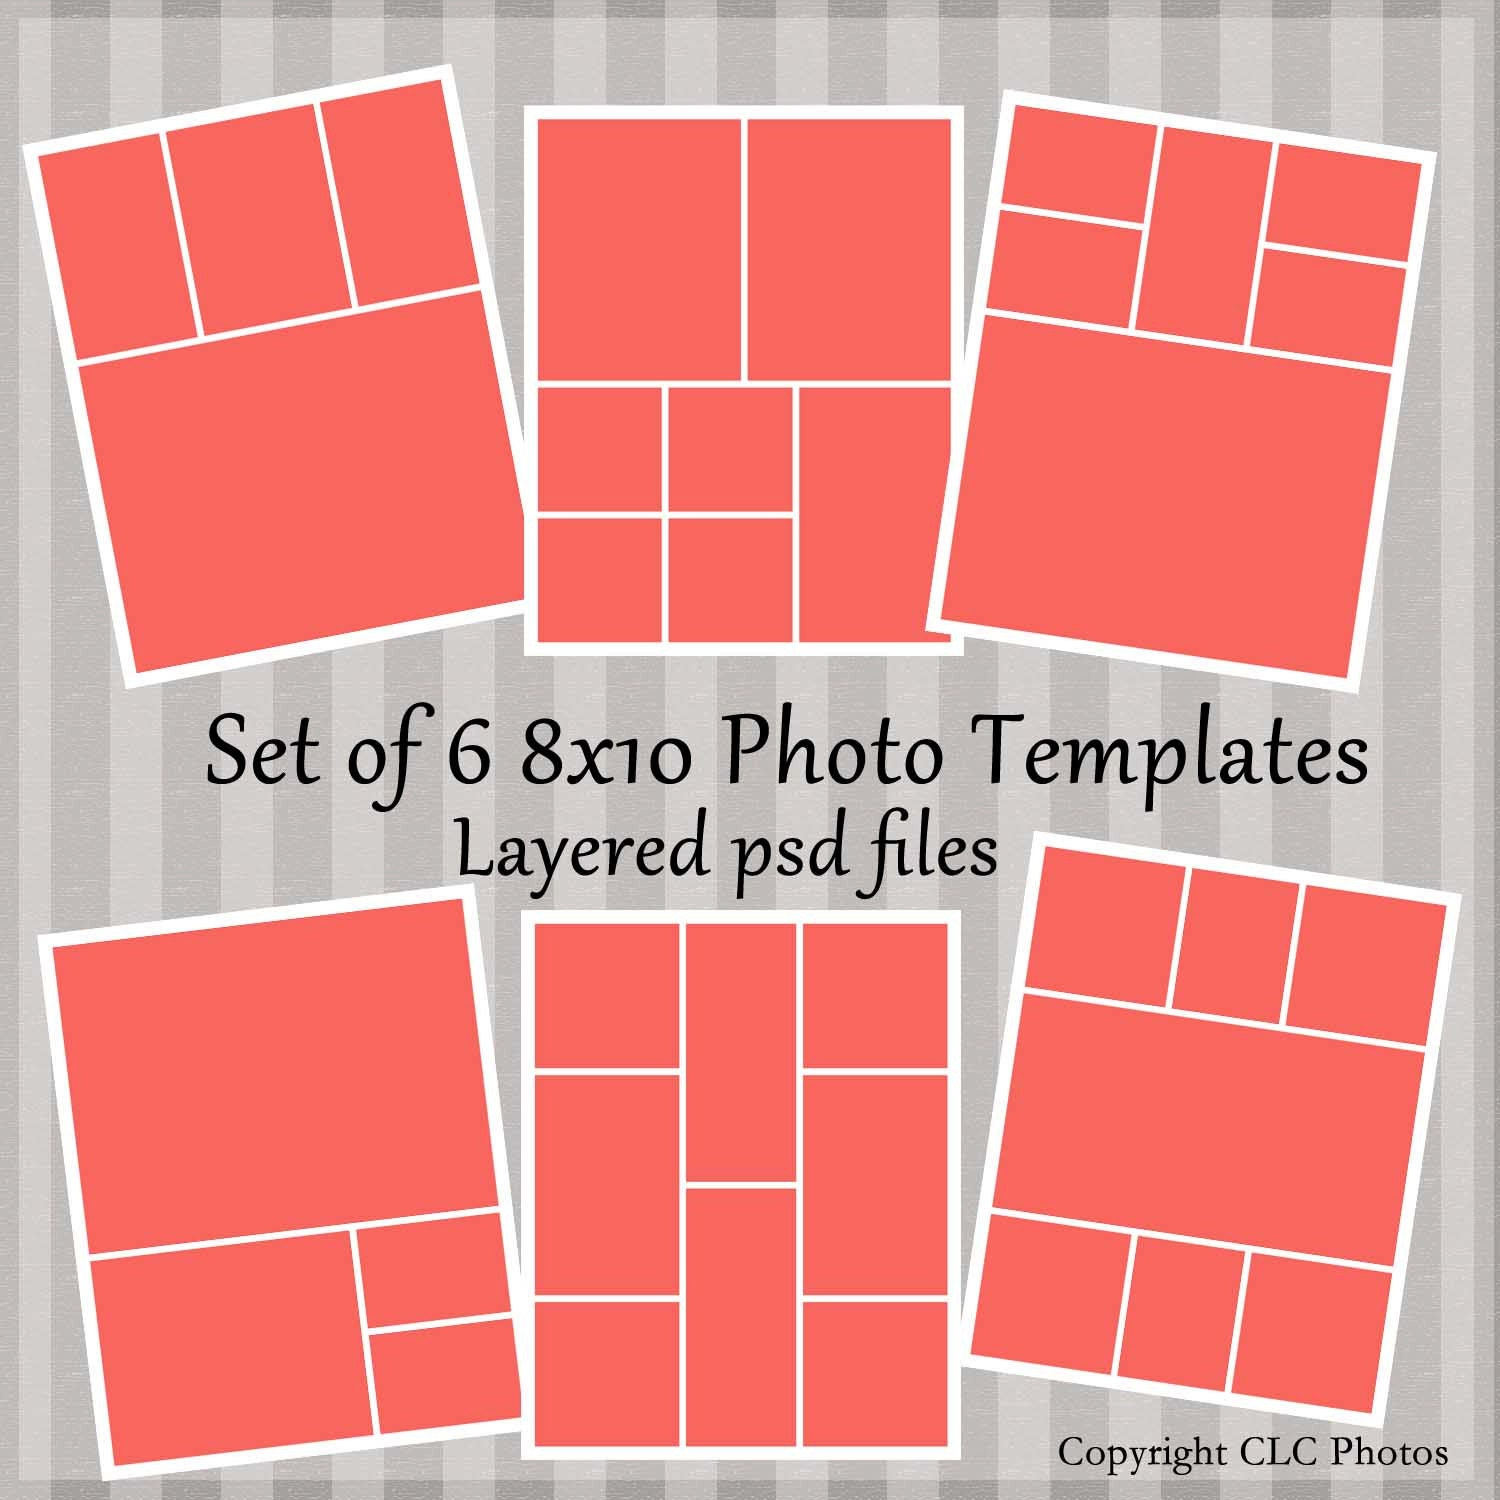 8x10 marketing photo template collage story board layered psd. Black Bedroom Furniture Sets. Home Design Ideas